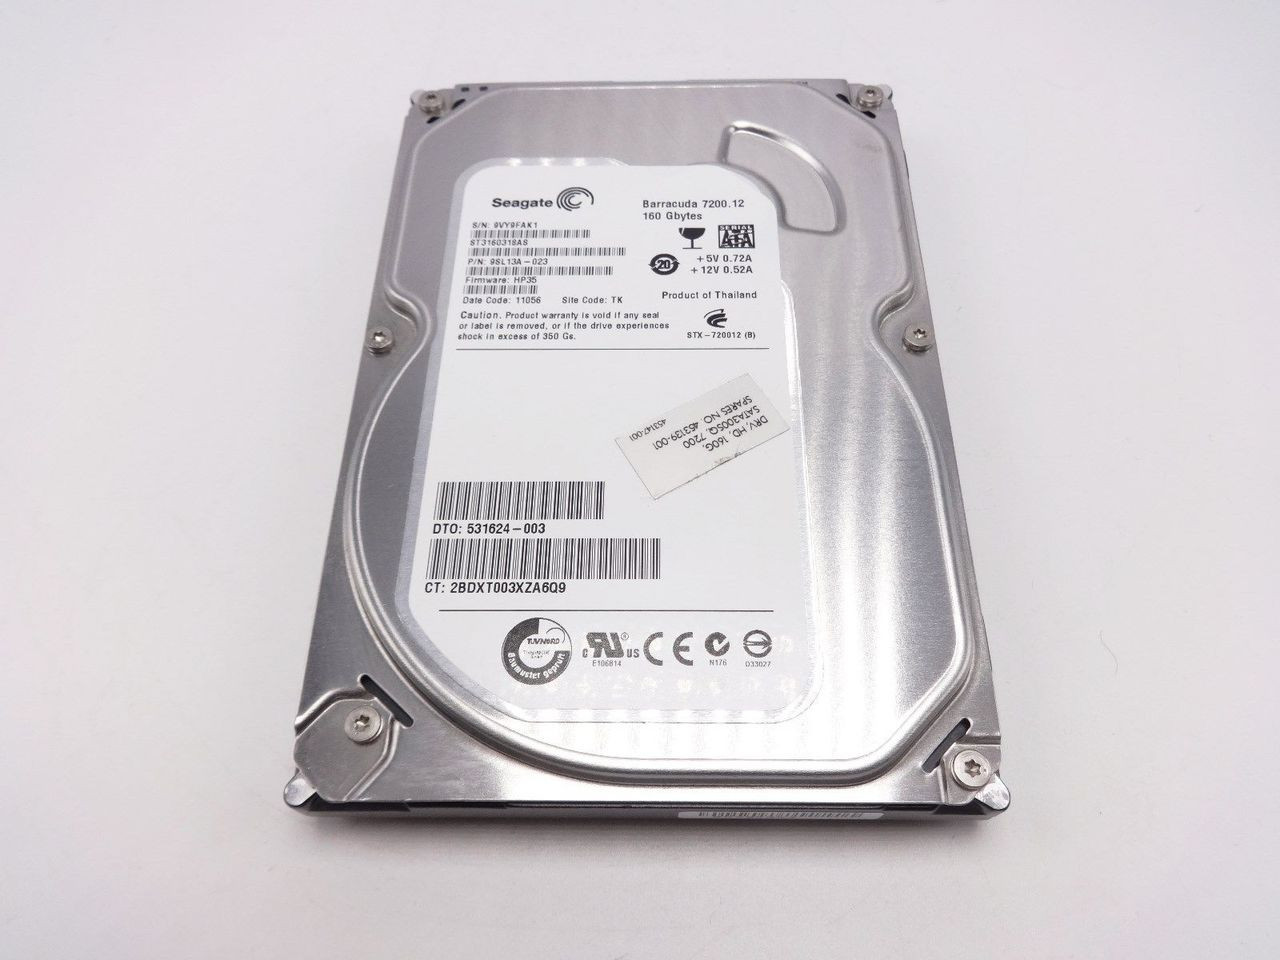 HP 453139-001 160GB SATA 3.0Gb/s 7200RPM 3.5 internal hard drive